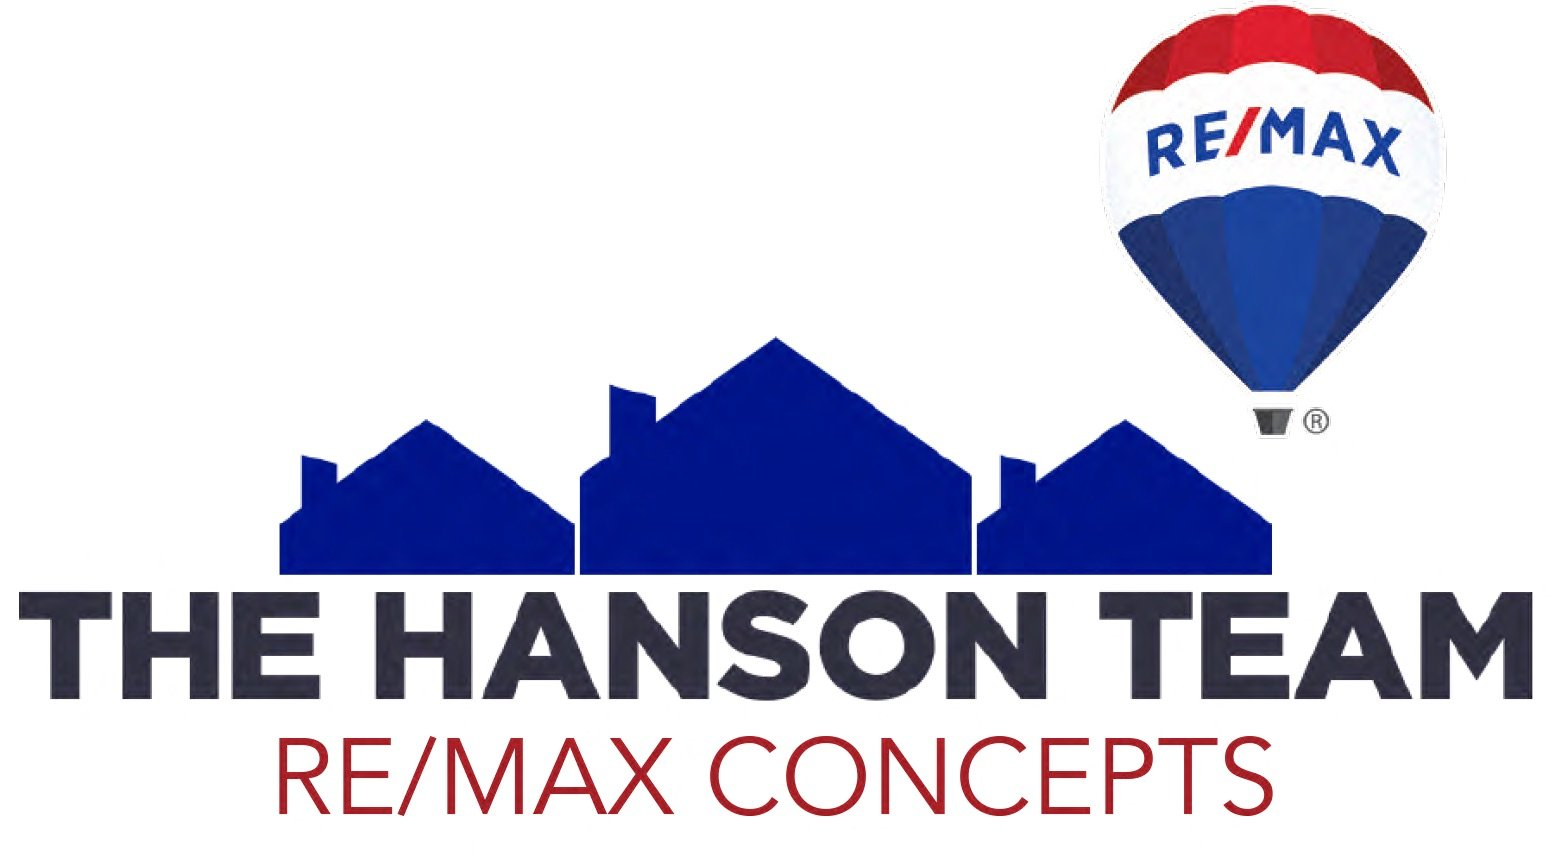 The Hanson Team RE/MAX Concepts logo